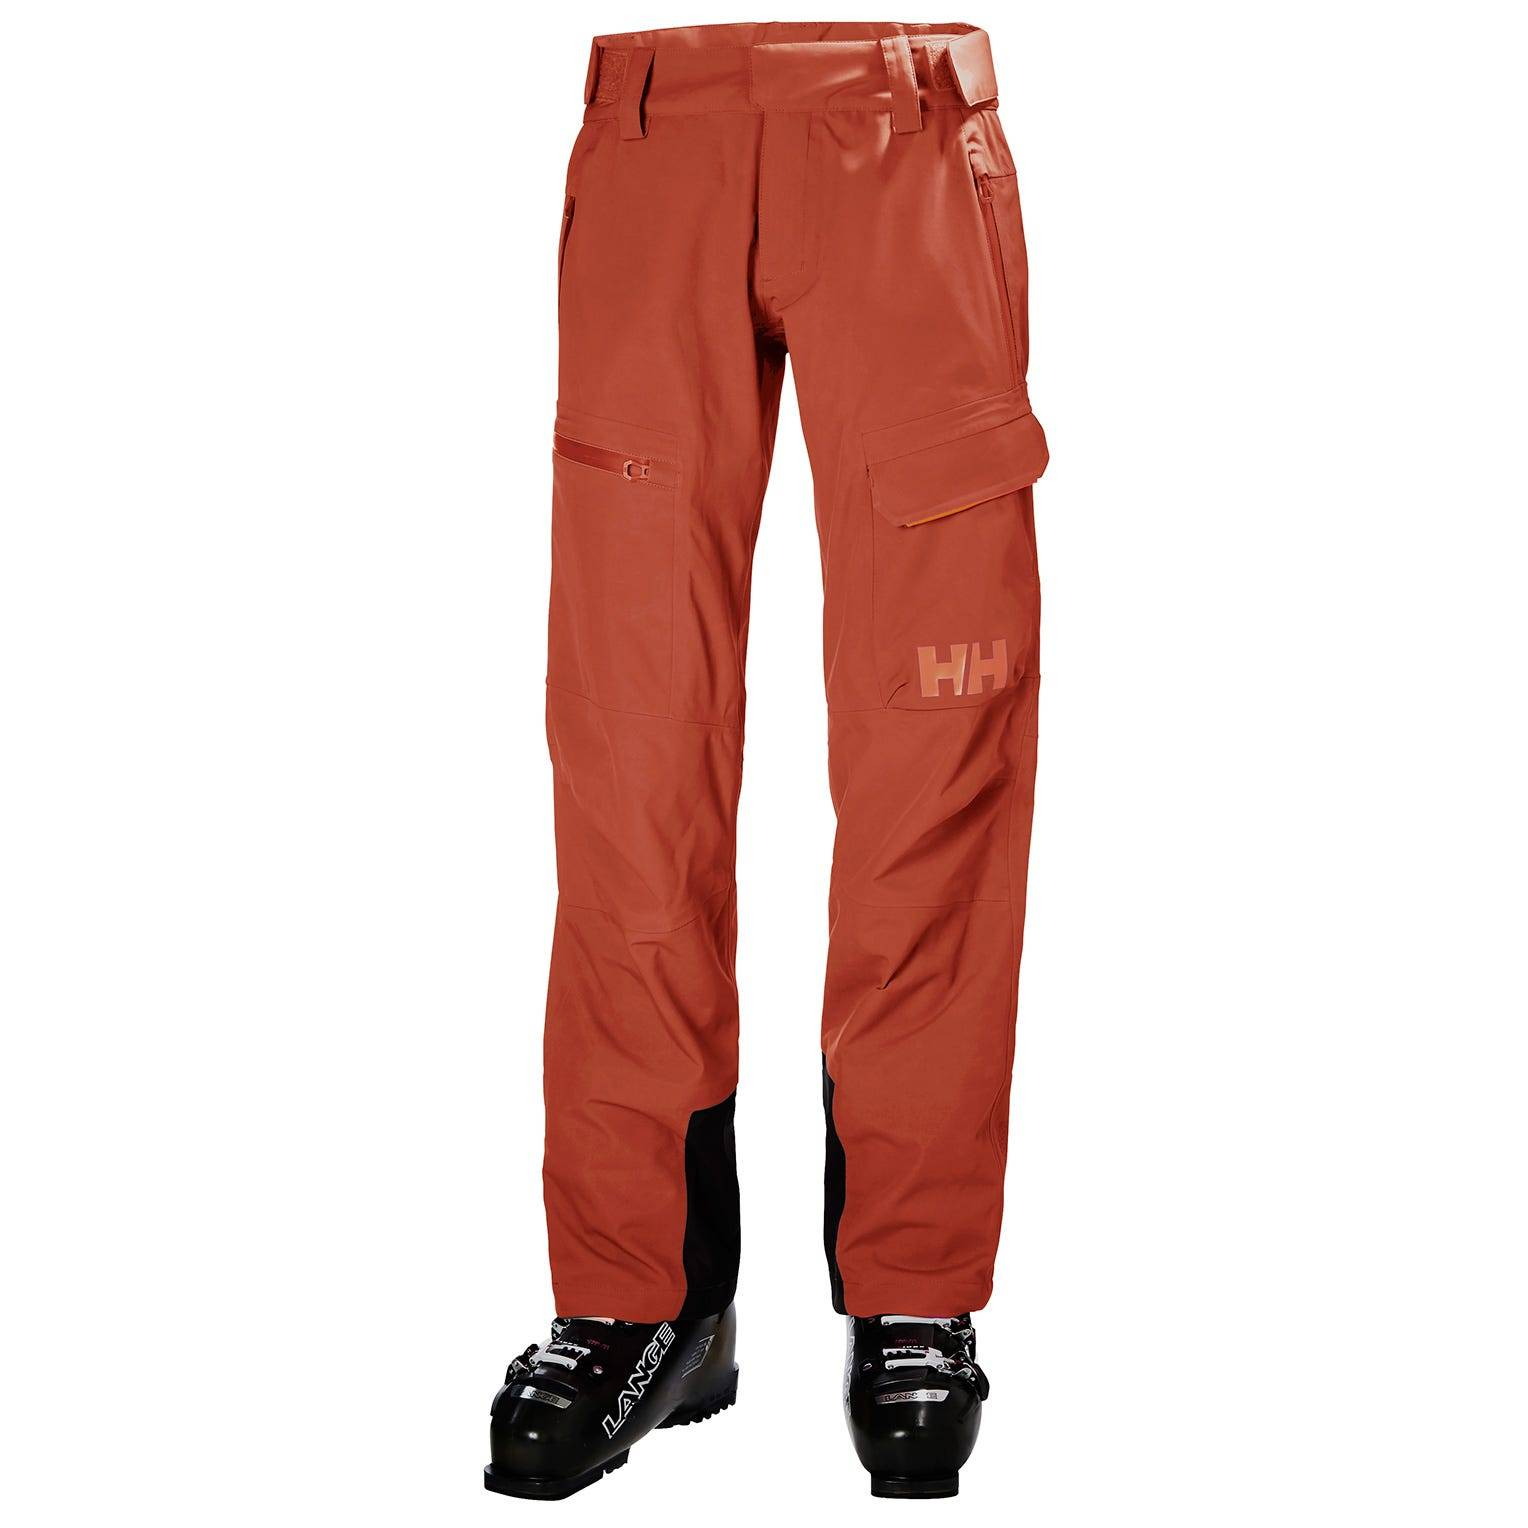 Helly Hansen W Aurora Shell 2.0 Pant Womens Ski Red L